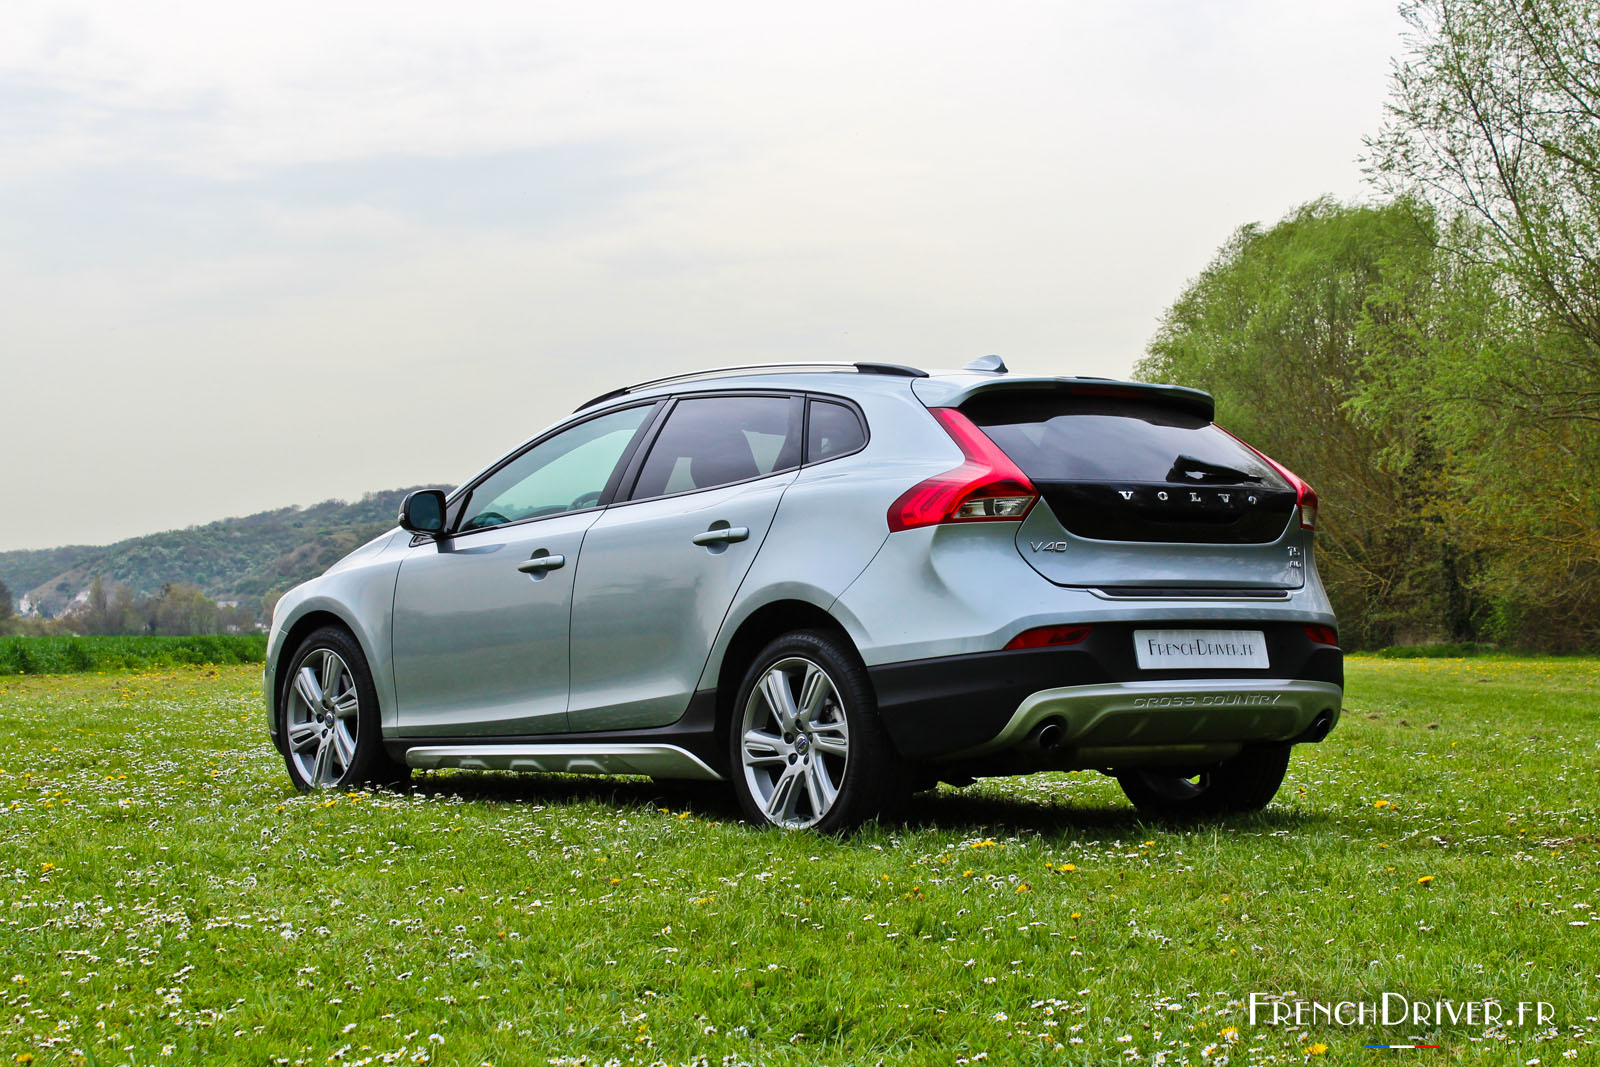 essai de la volvo v40 cross country t5 awd french driver